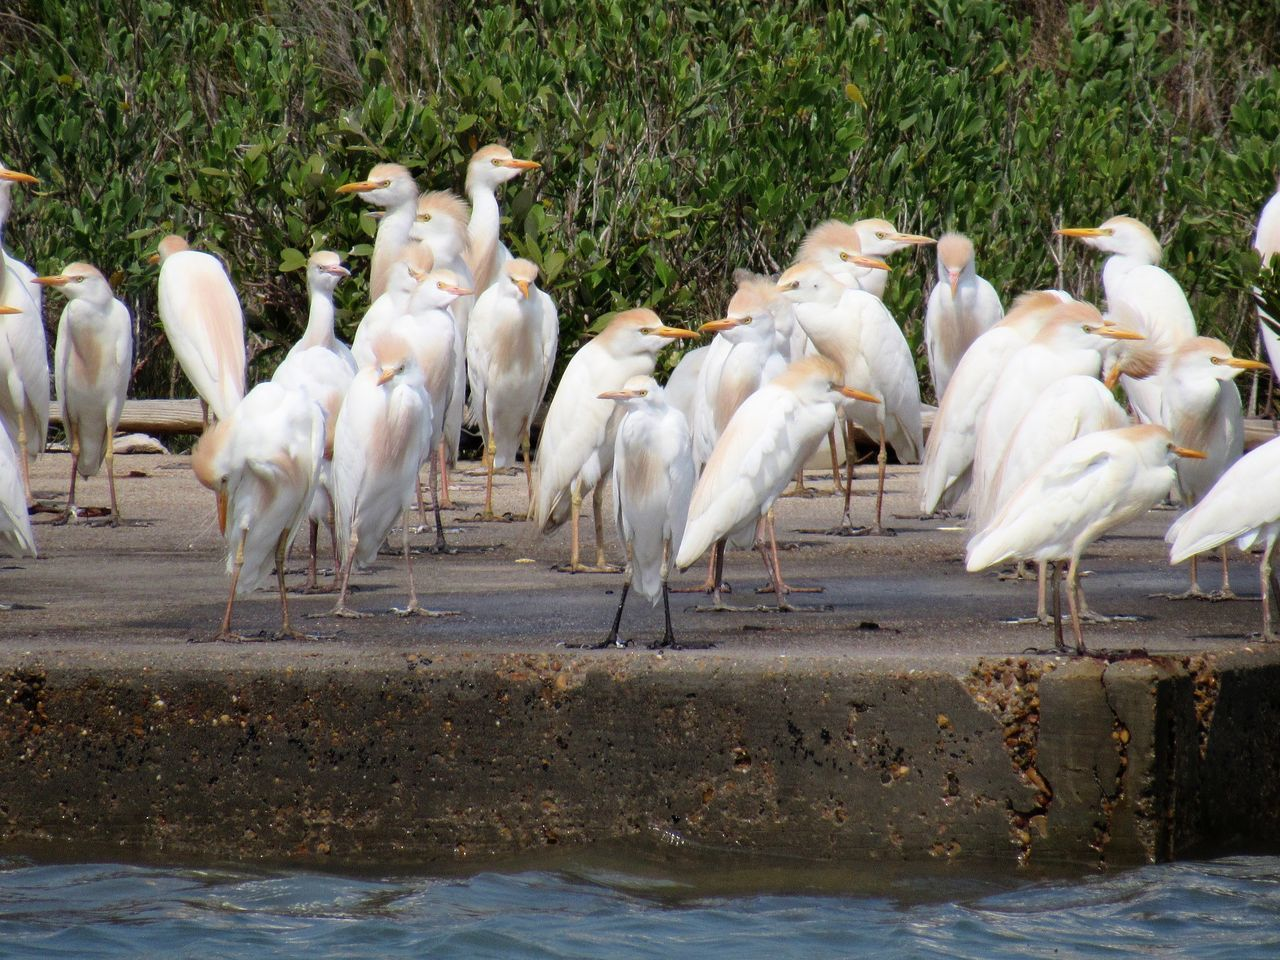 Cattle Egrets Animal Themes Animals In The Wild Babys Bird Day Domestic Animals Large Group Of Animals No People Outdoors White Color Premium Collection